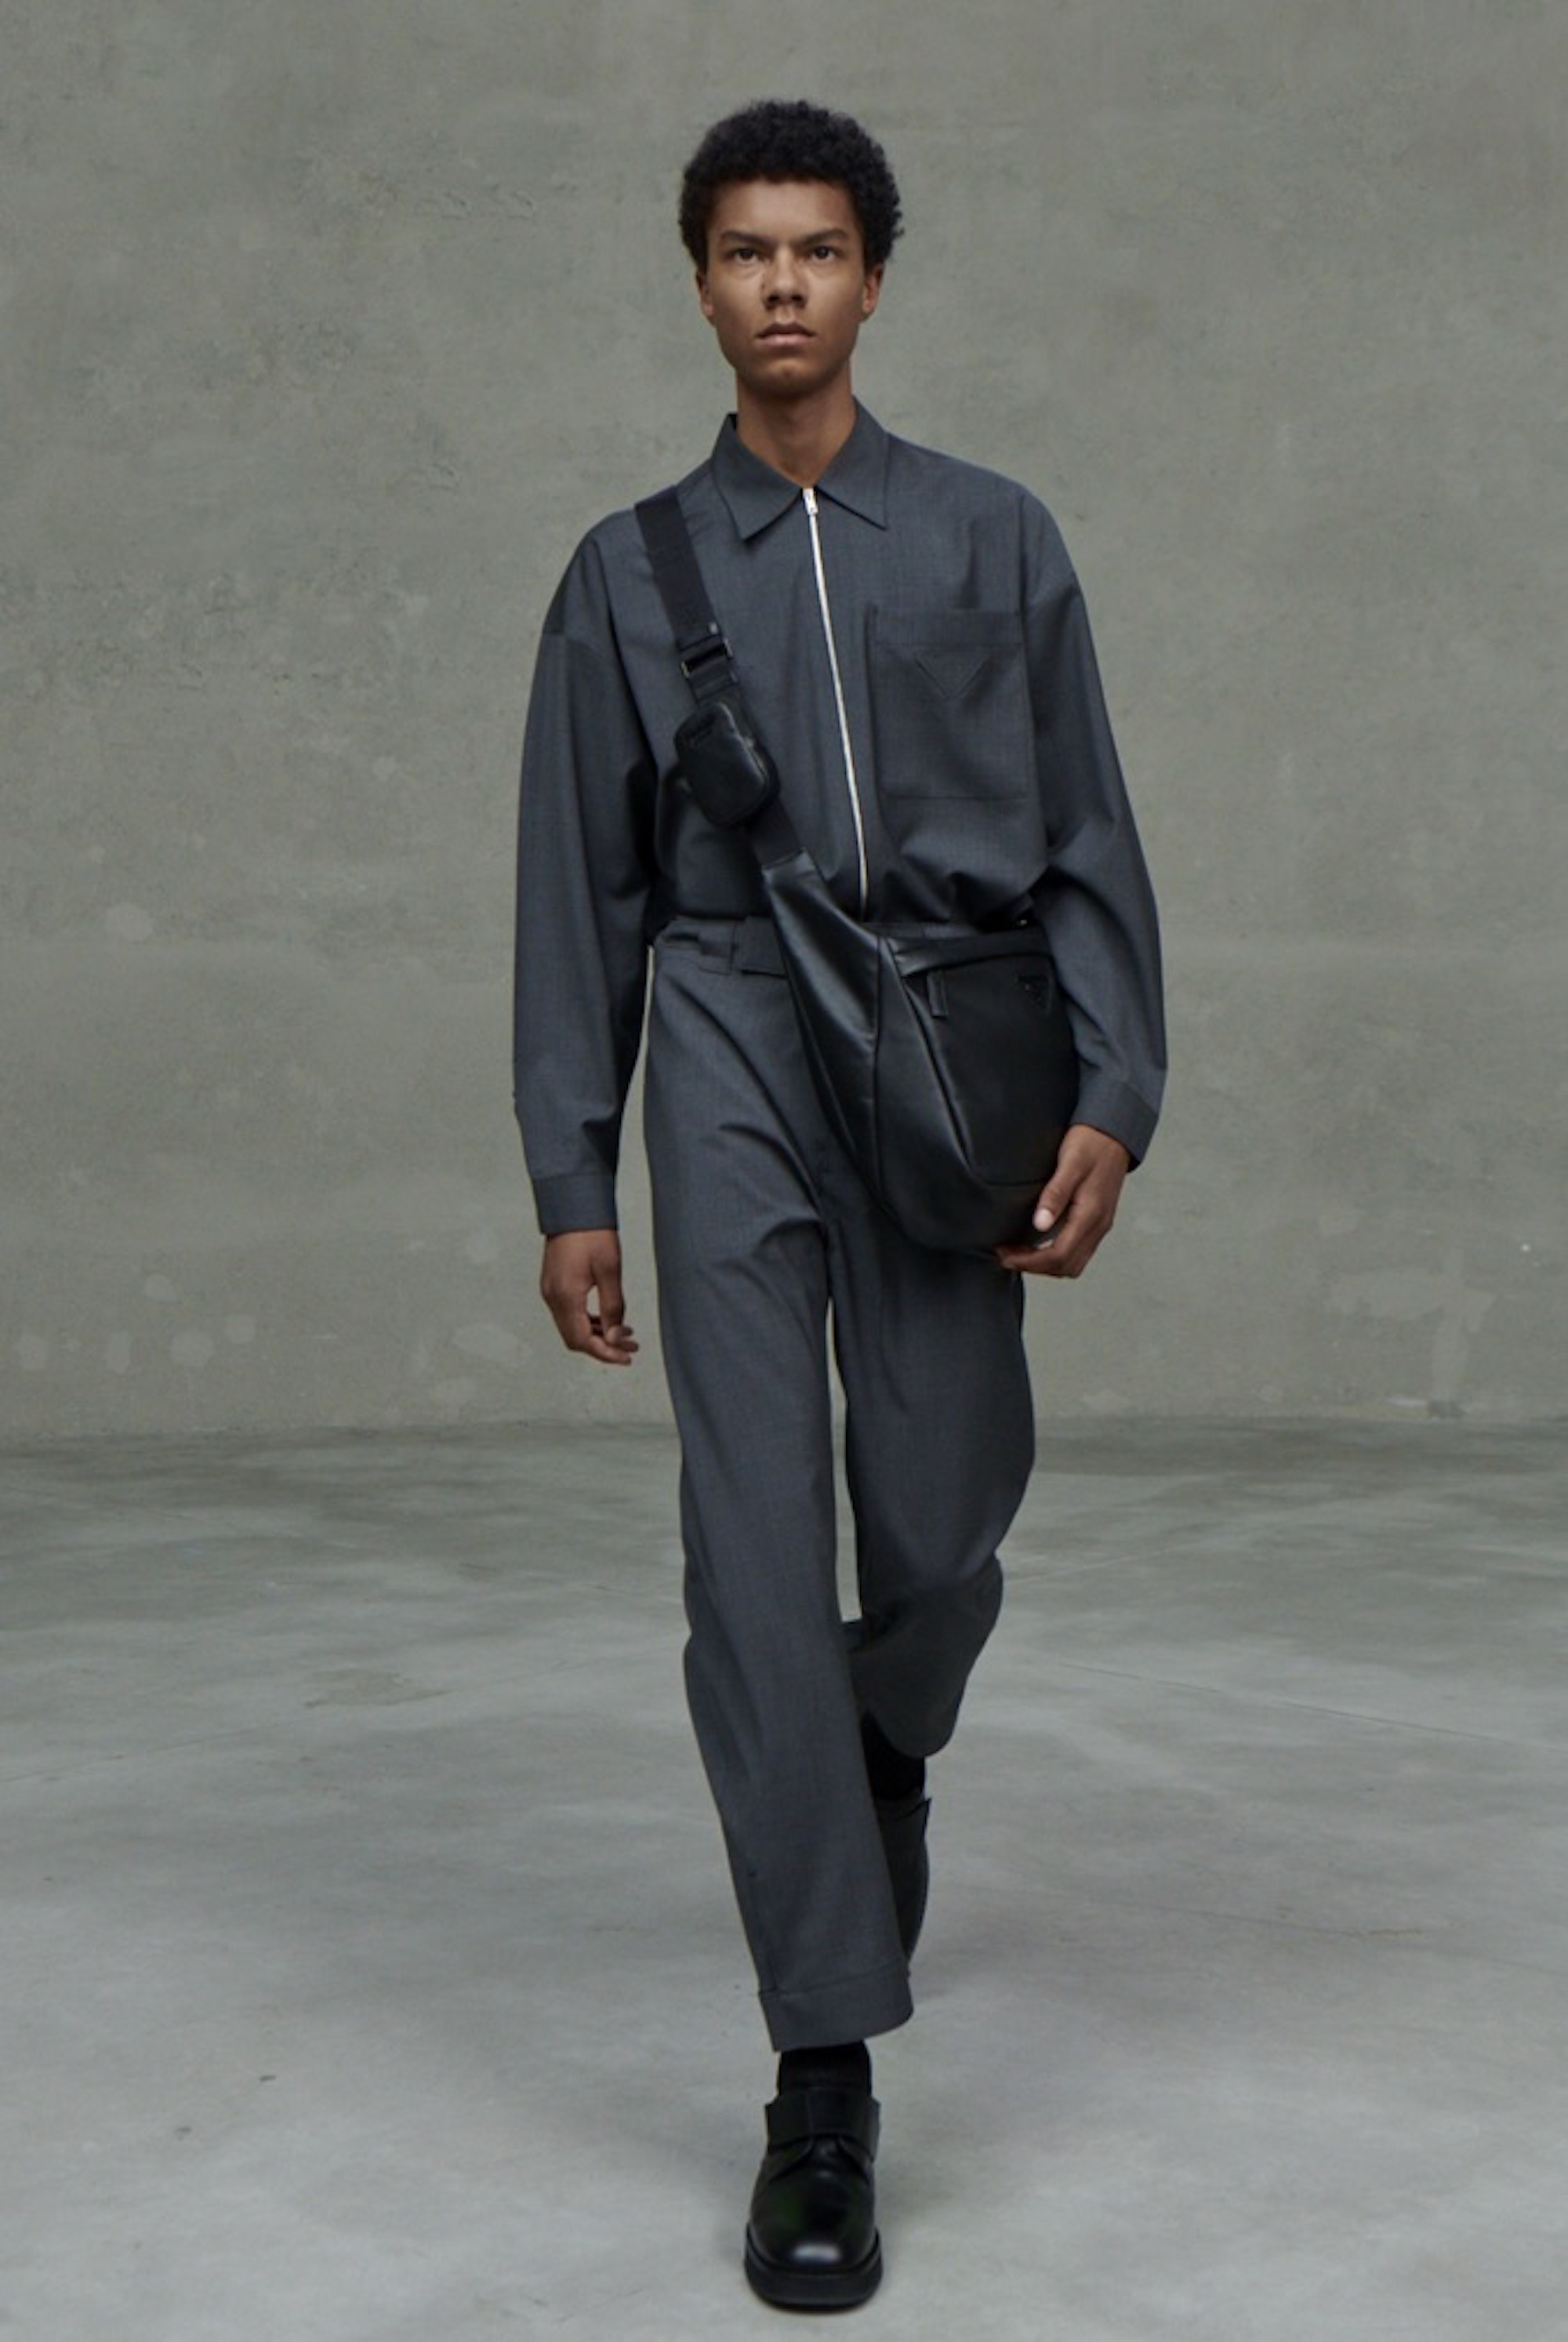 Prada SS21 collection black two piece